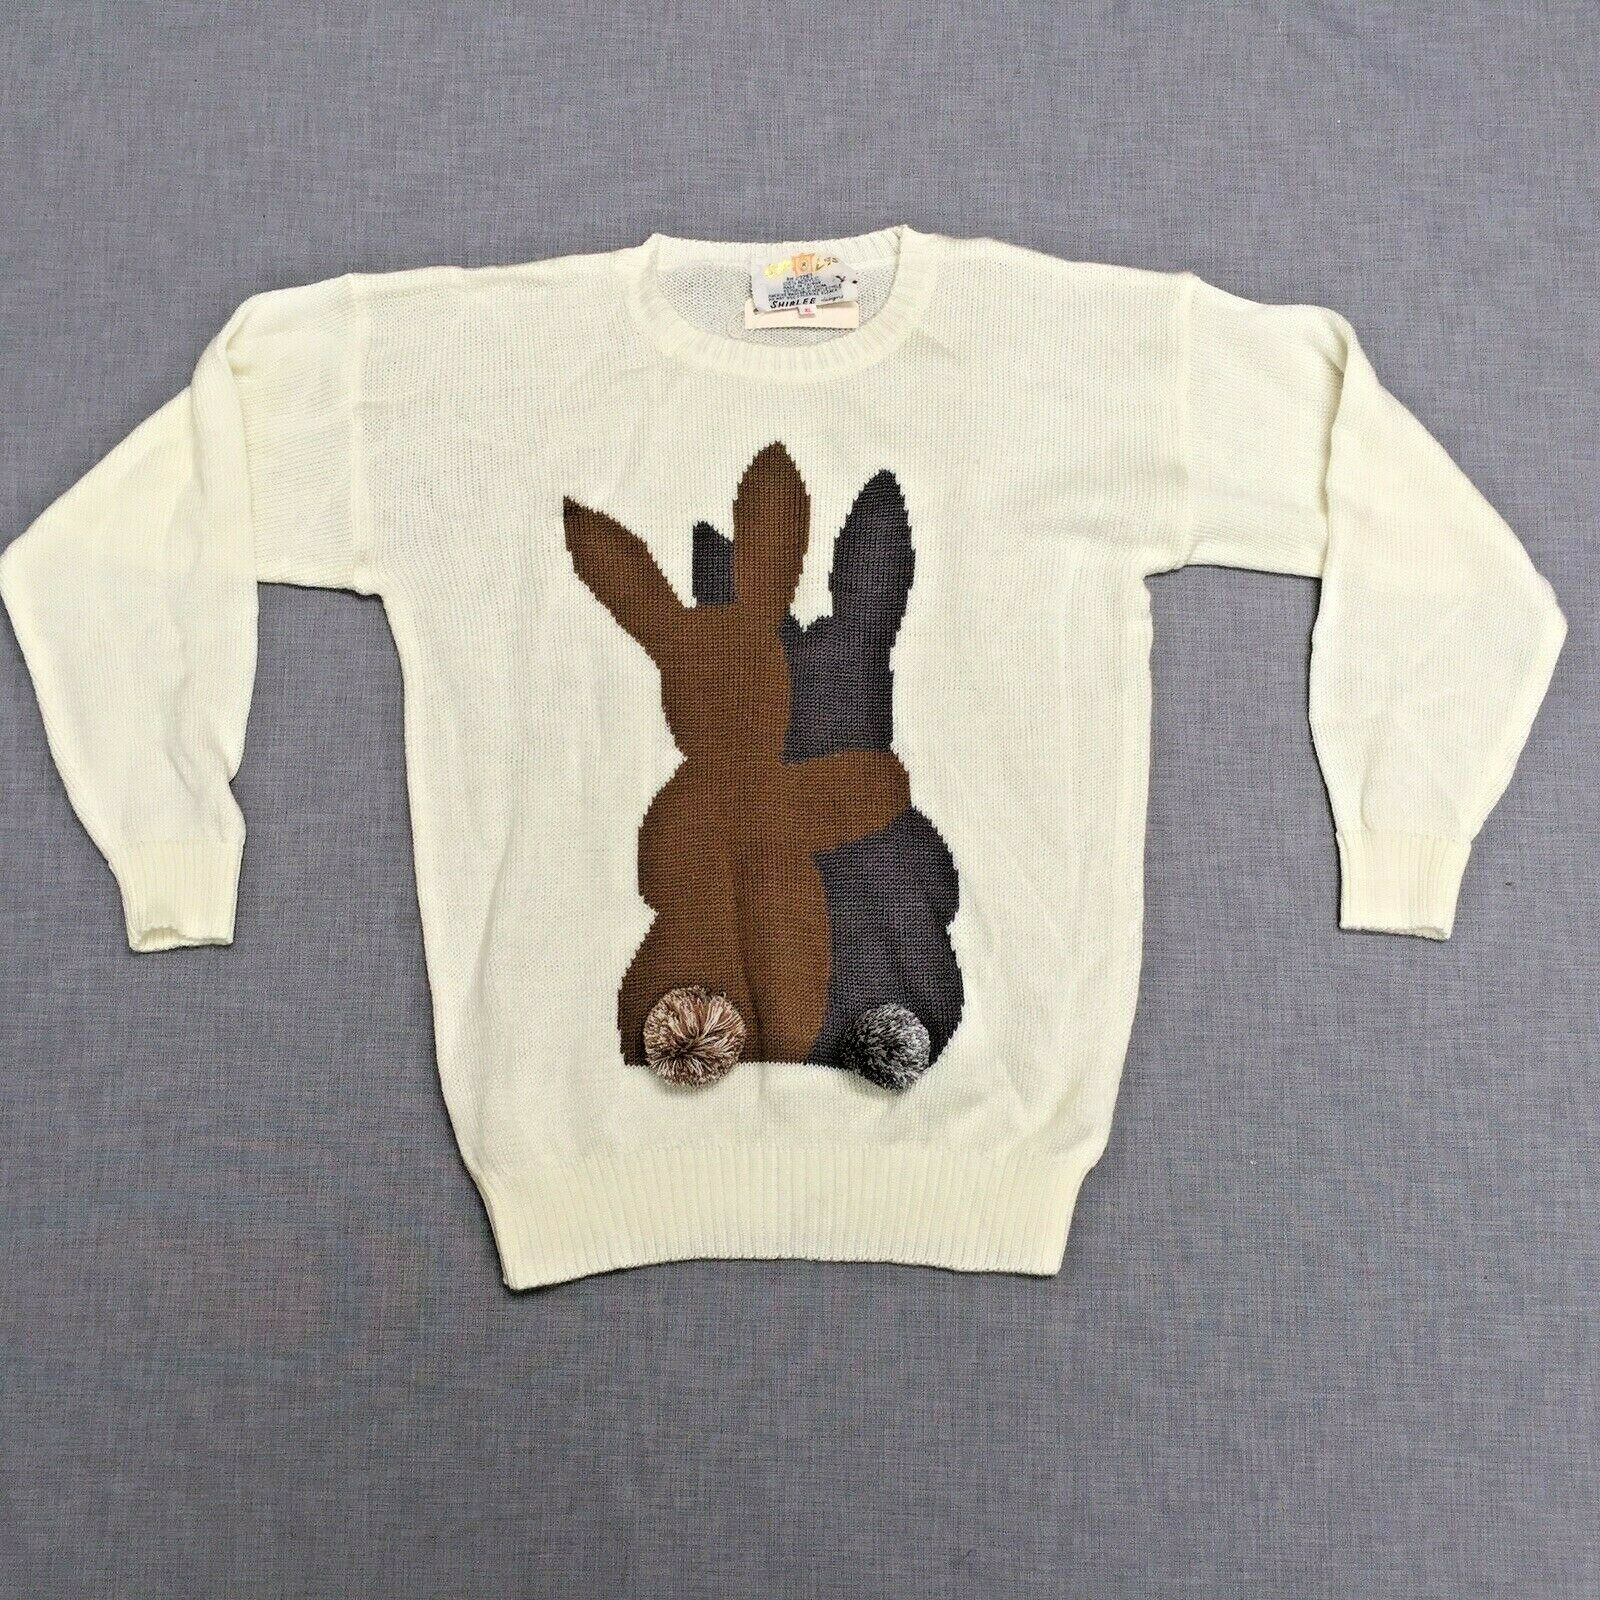 Cyn Les Shirlee Womens Sweater XL Rabbits Bunny Easter NWT Knit Top Pom Poms Vtg